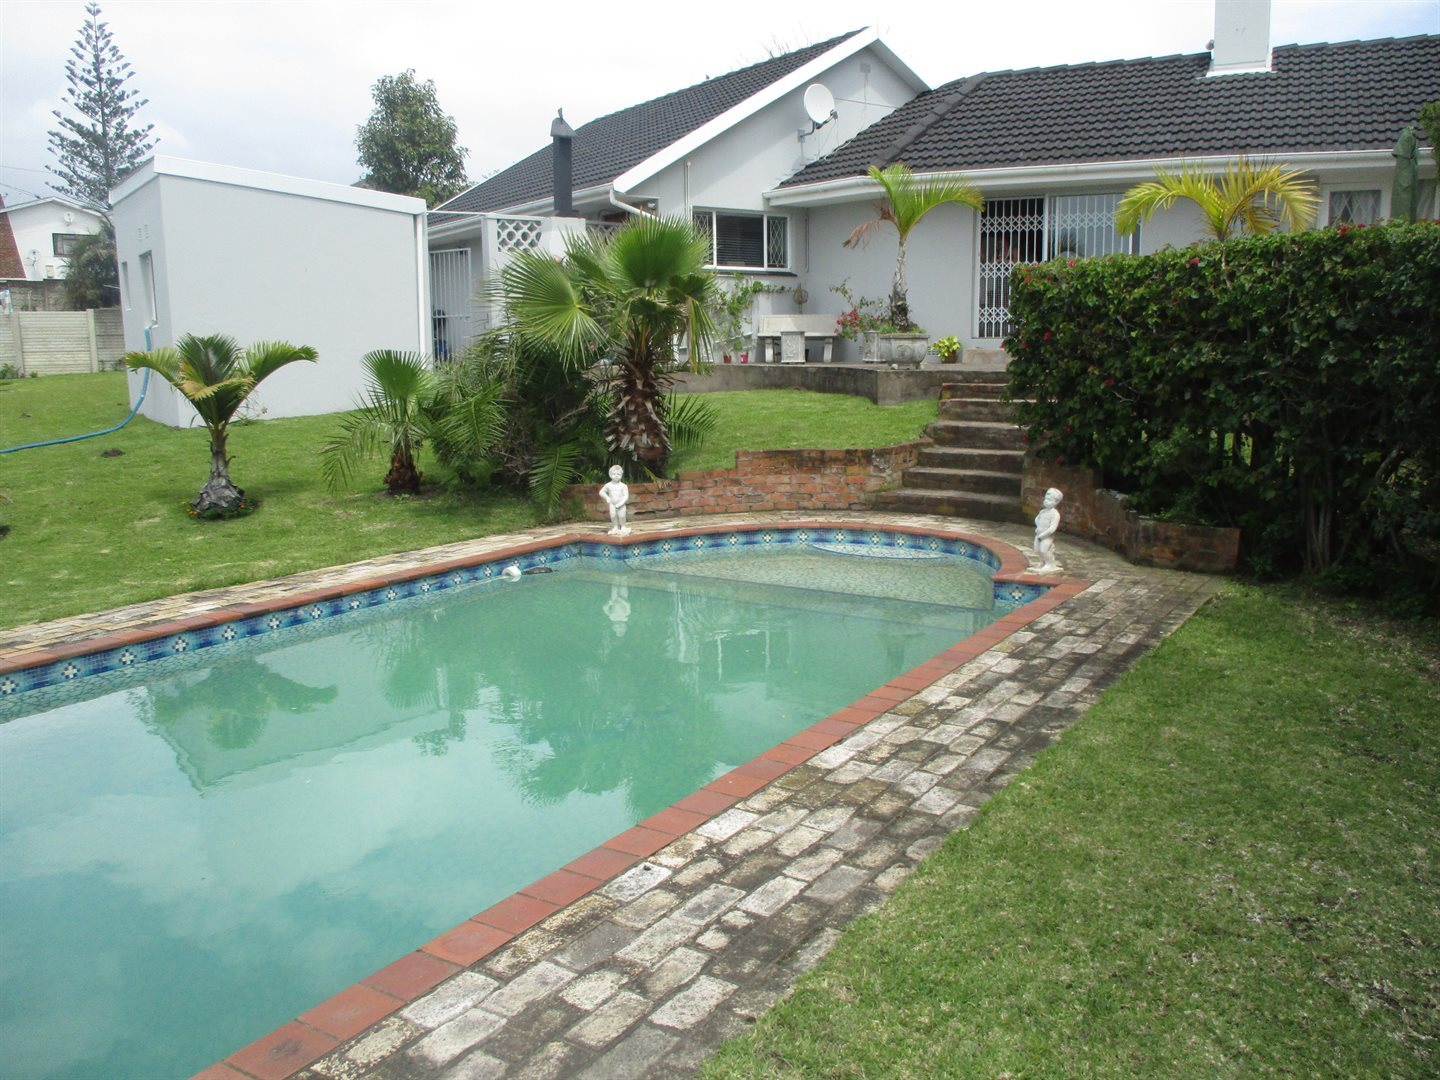 Property for Sale by DLC INC. ATTORNEYS Graham Hodson, House, 3 Bedrooms - ZAR 1,850,000